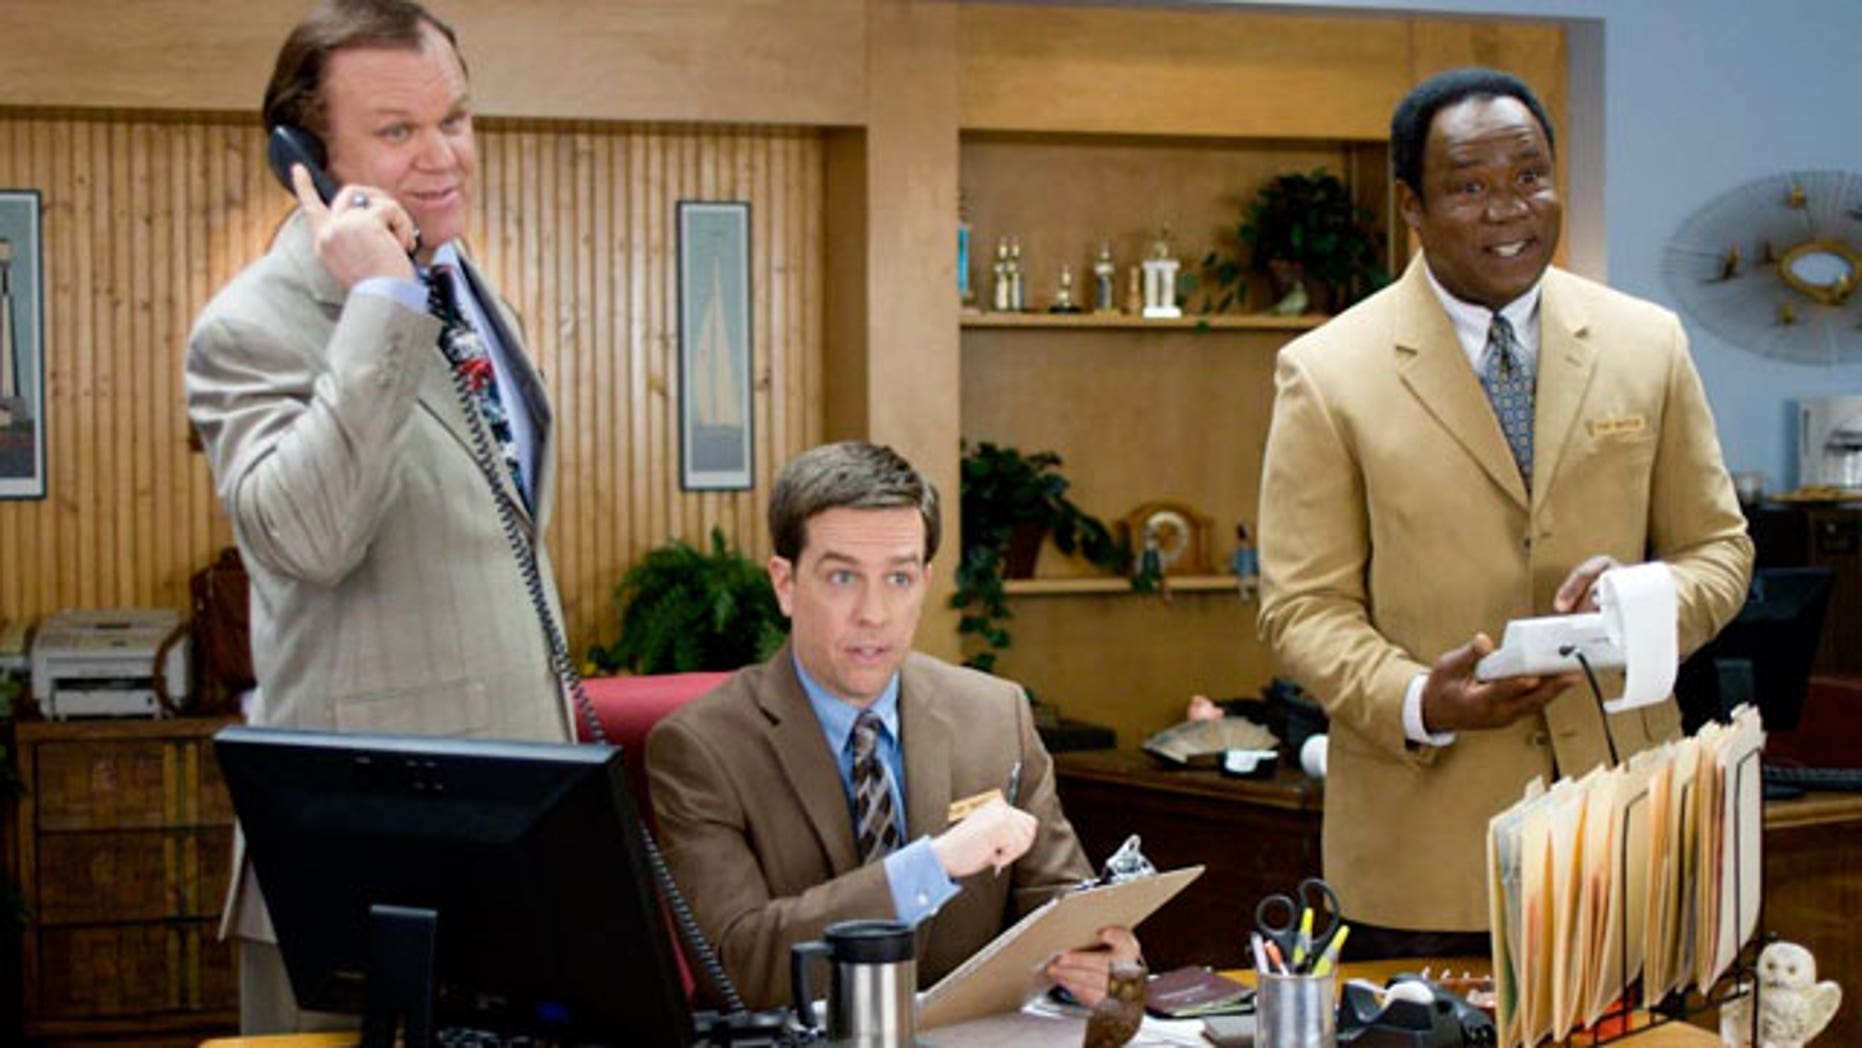 """In this film publicity image released by Fox Searchlight Films, from left, John C. Reilly, Ed Helms and Isiah Whitlock Jr. are shown in a scene from, """"Cedar Rapids."""" (AP)"""